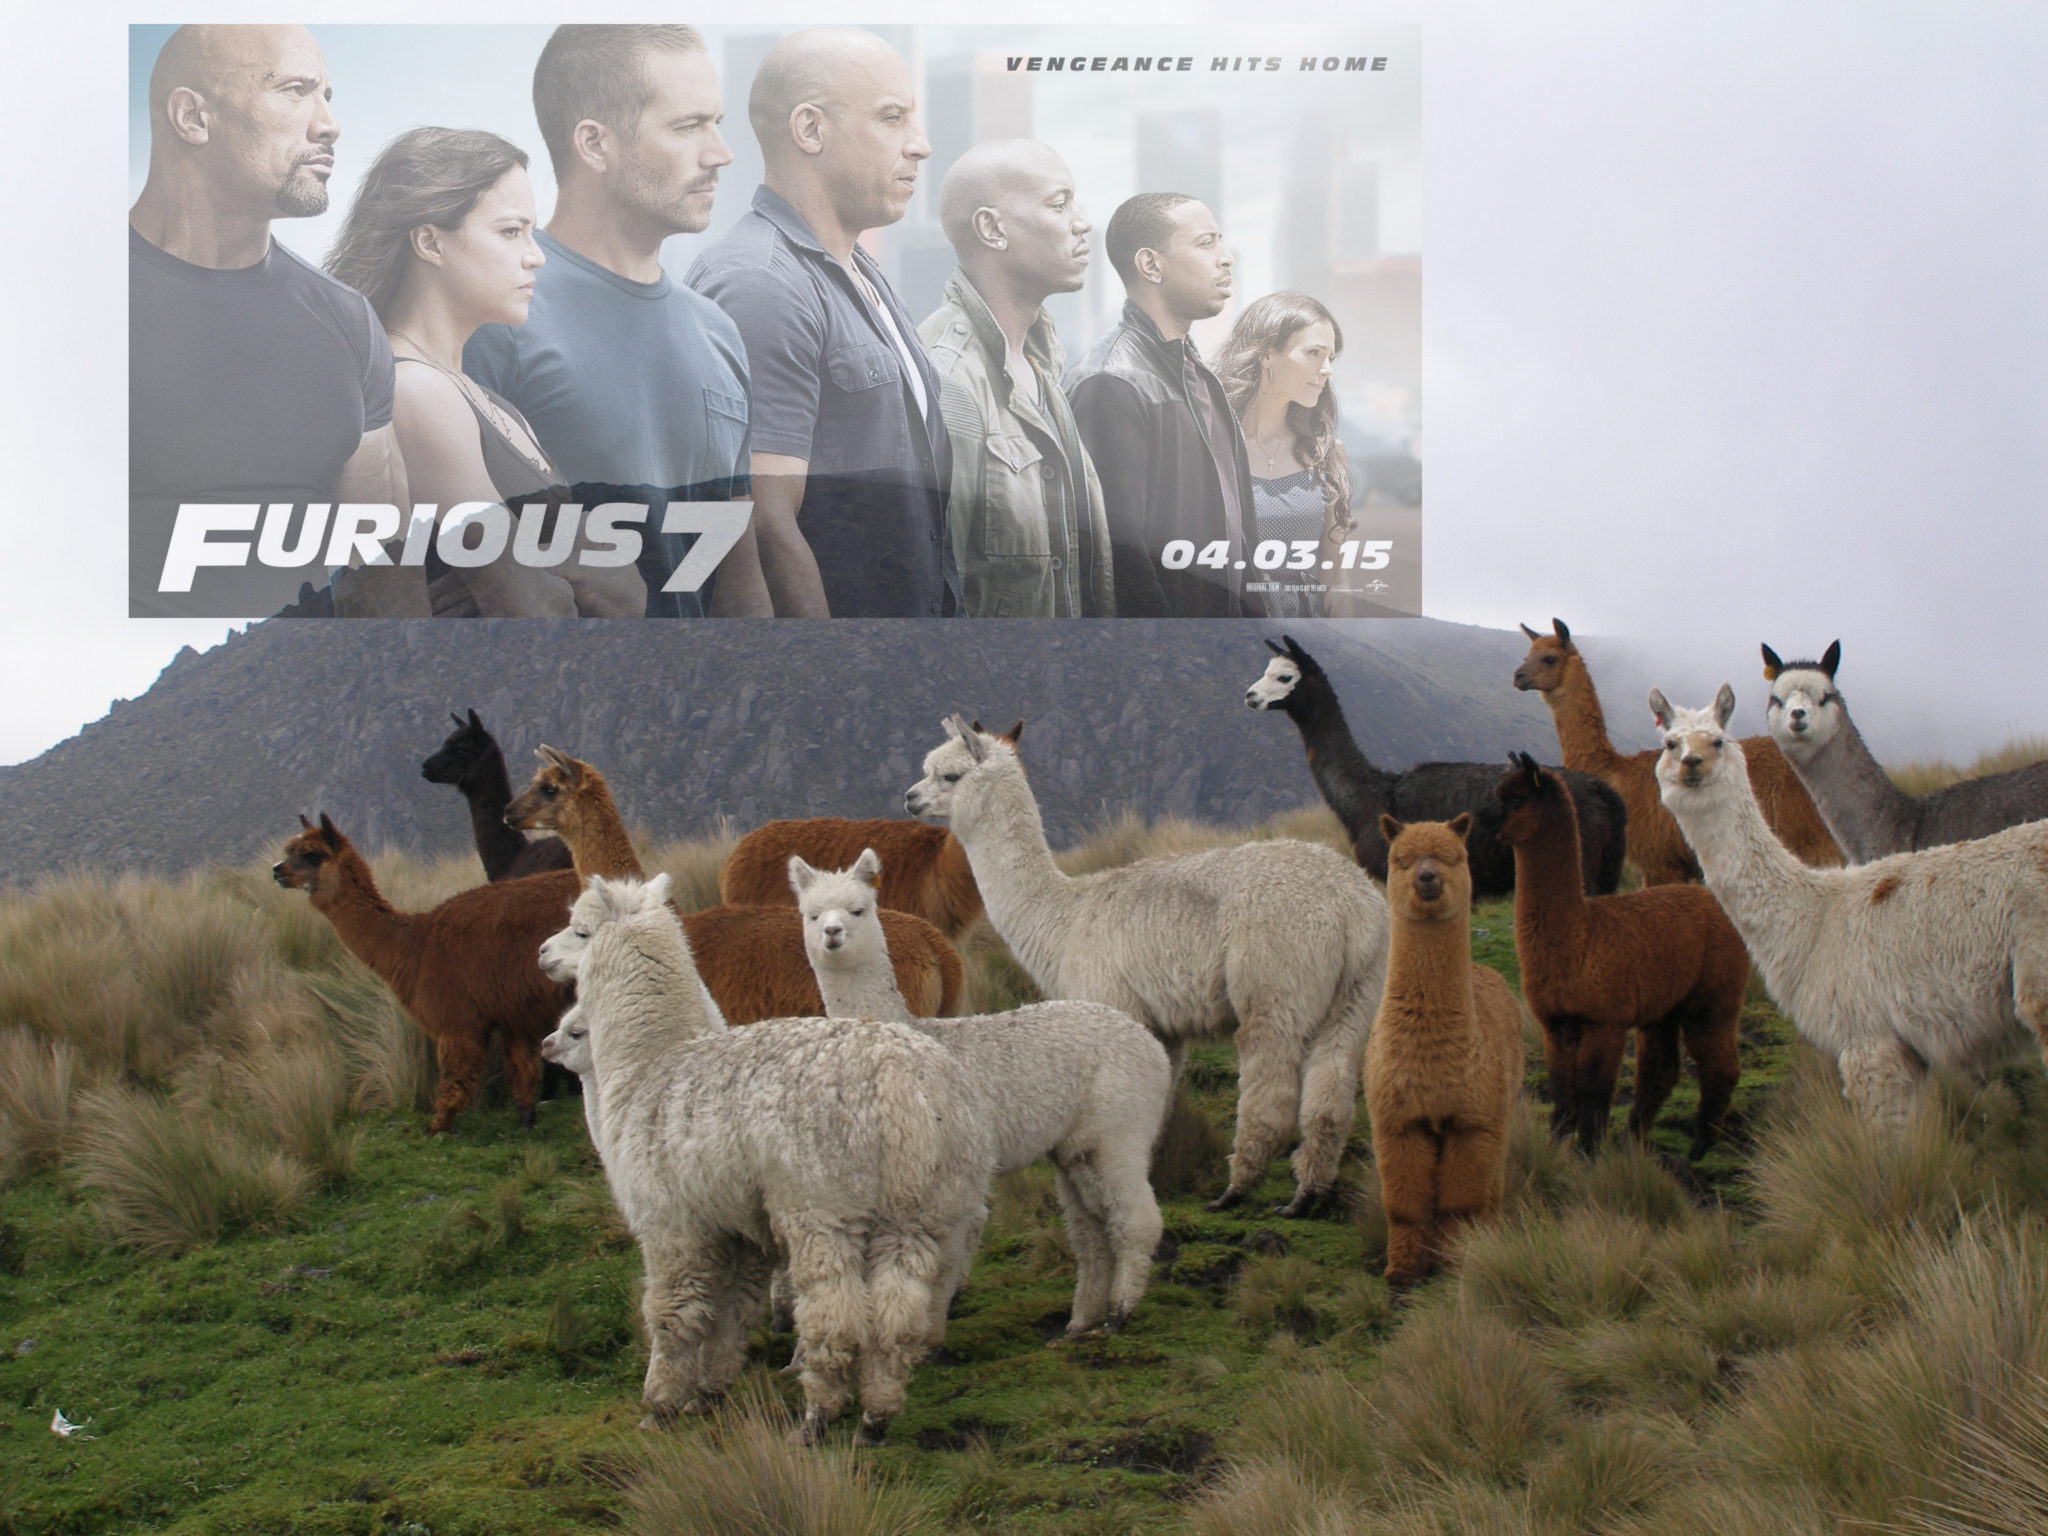 These alpacas are fast AND furious.